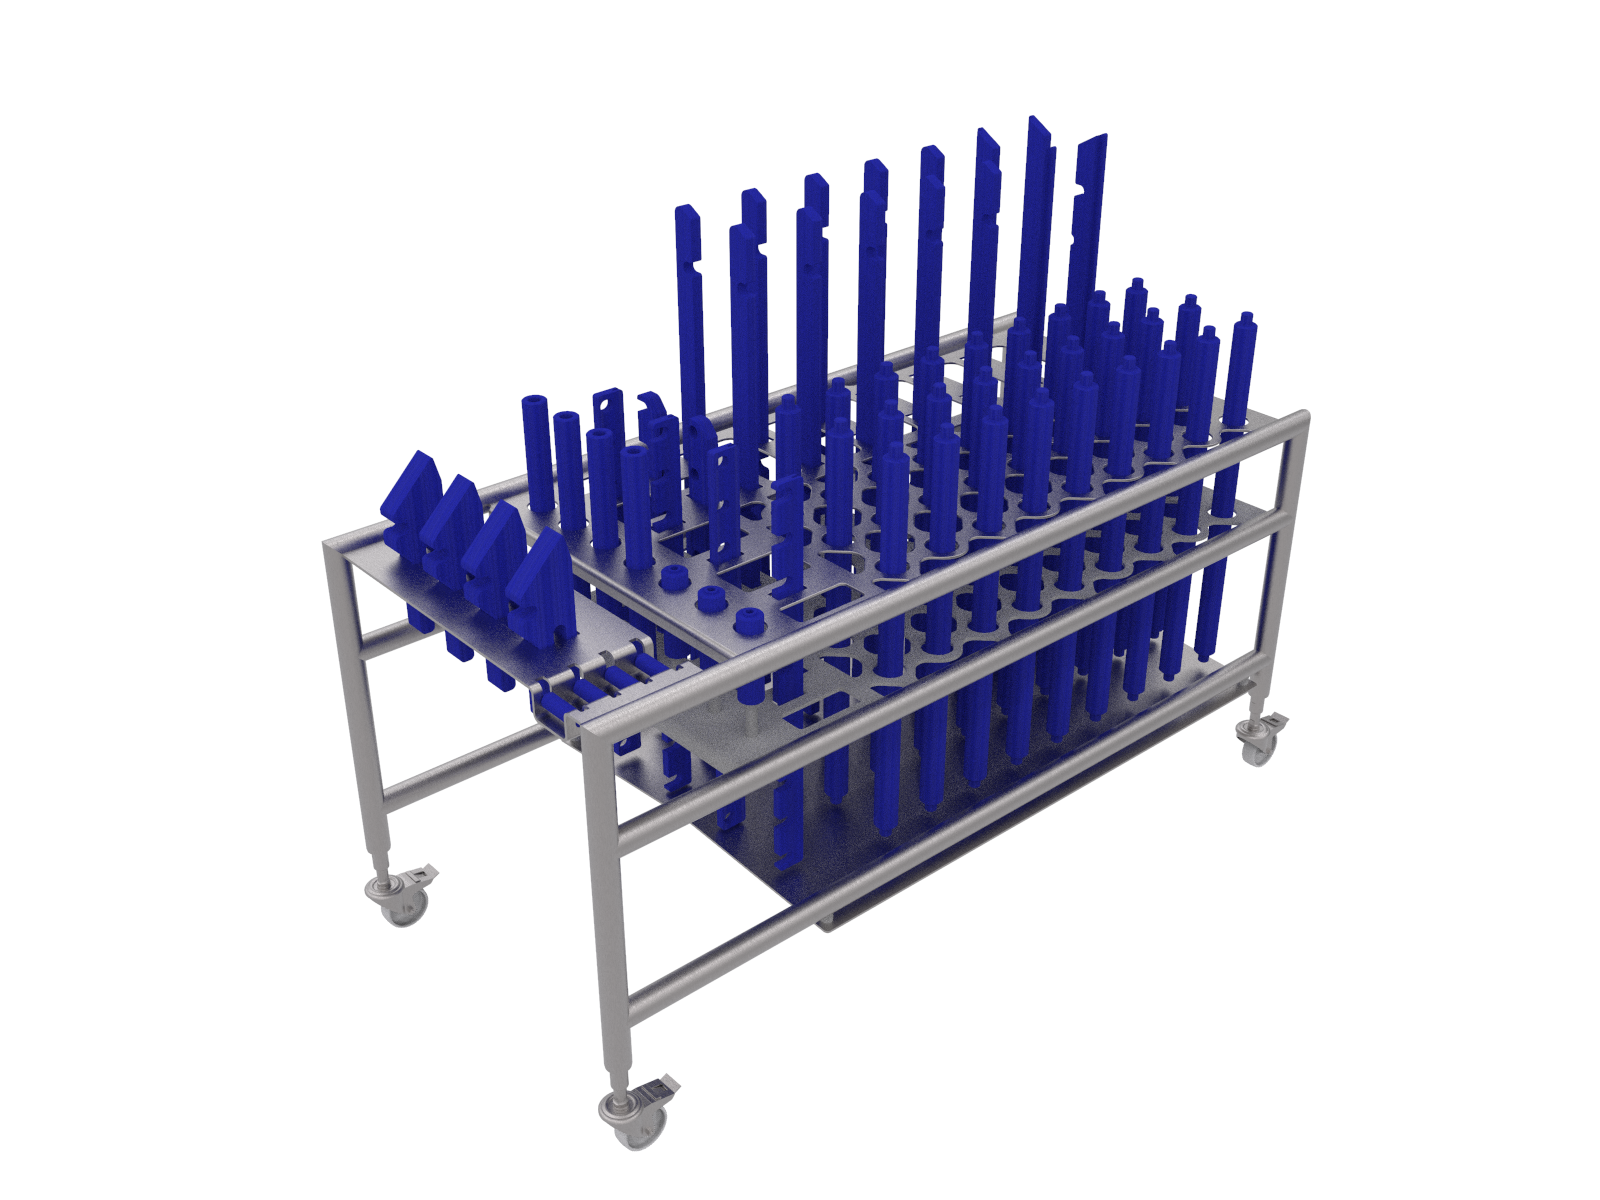 EC14 PARTS CLEANING TROLLEY